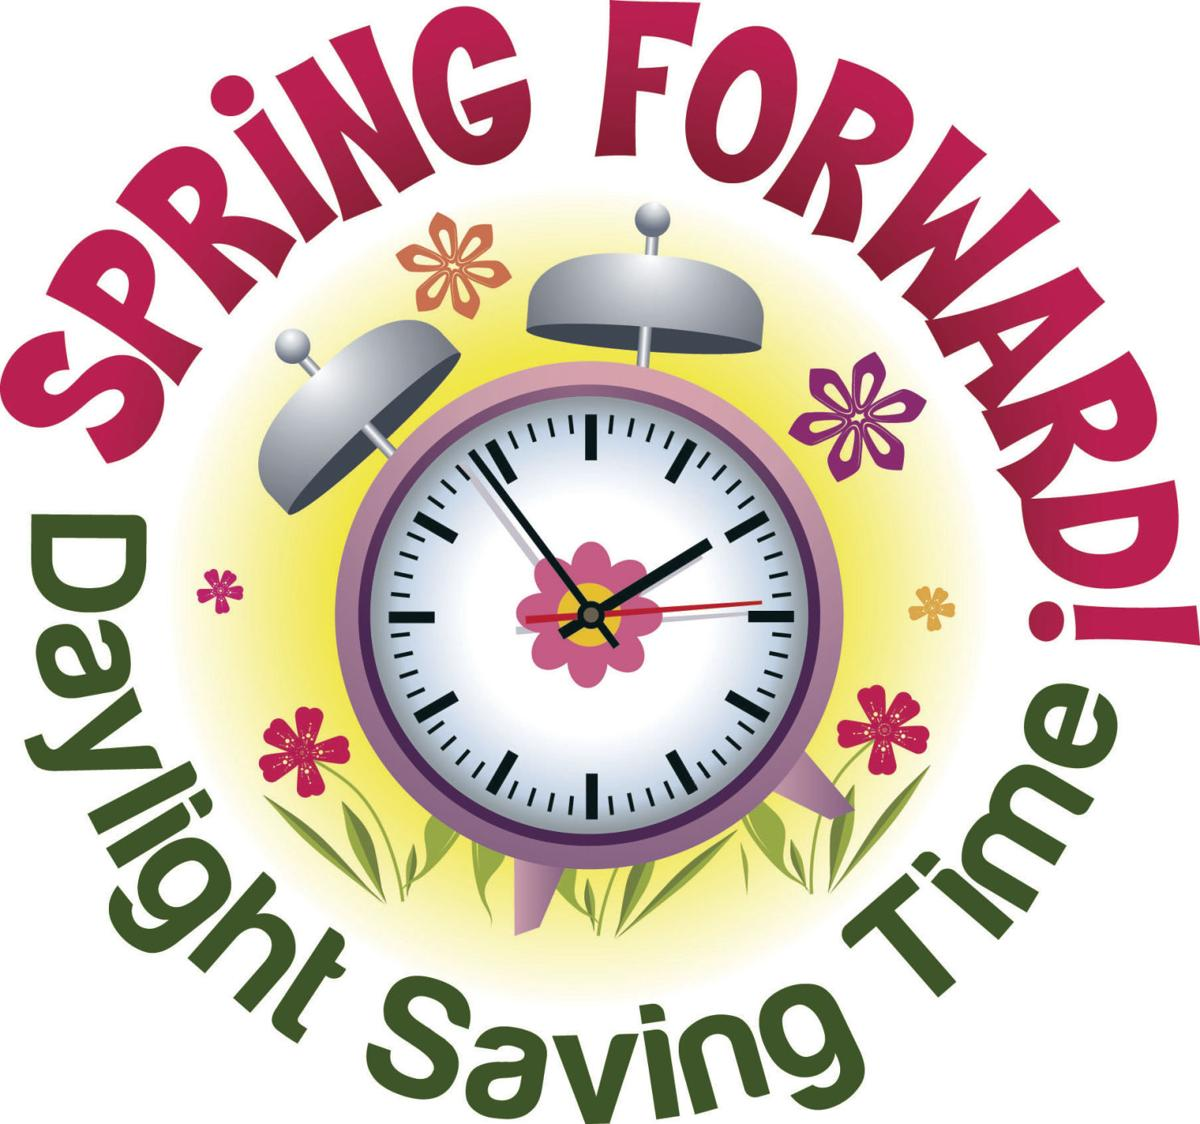 Daylight savings clipart free download on ijcnlp cliparts.